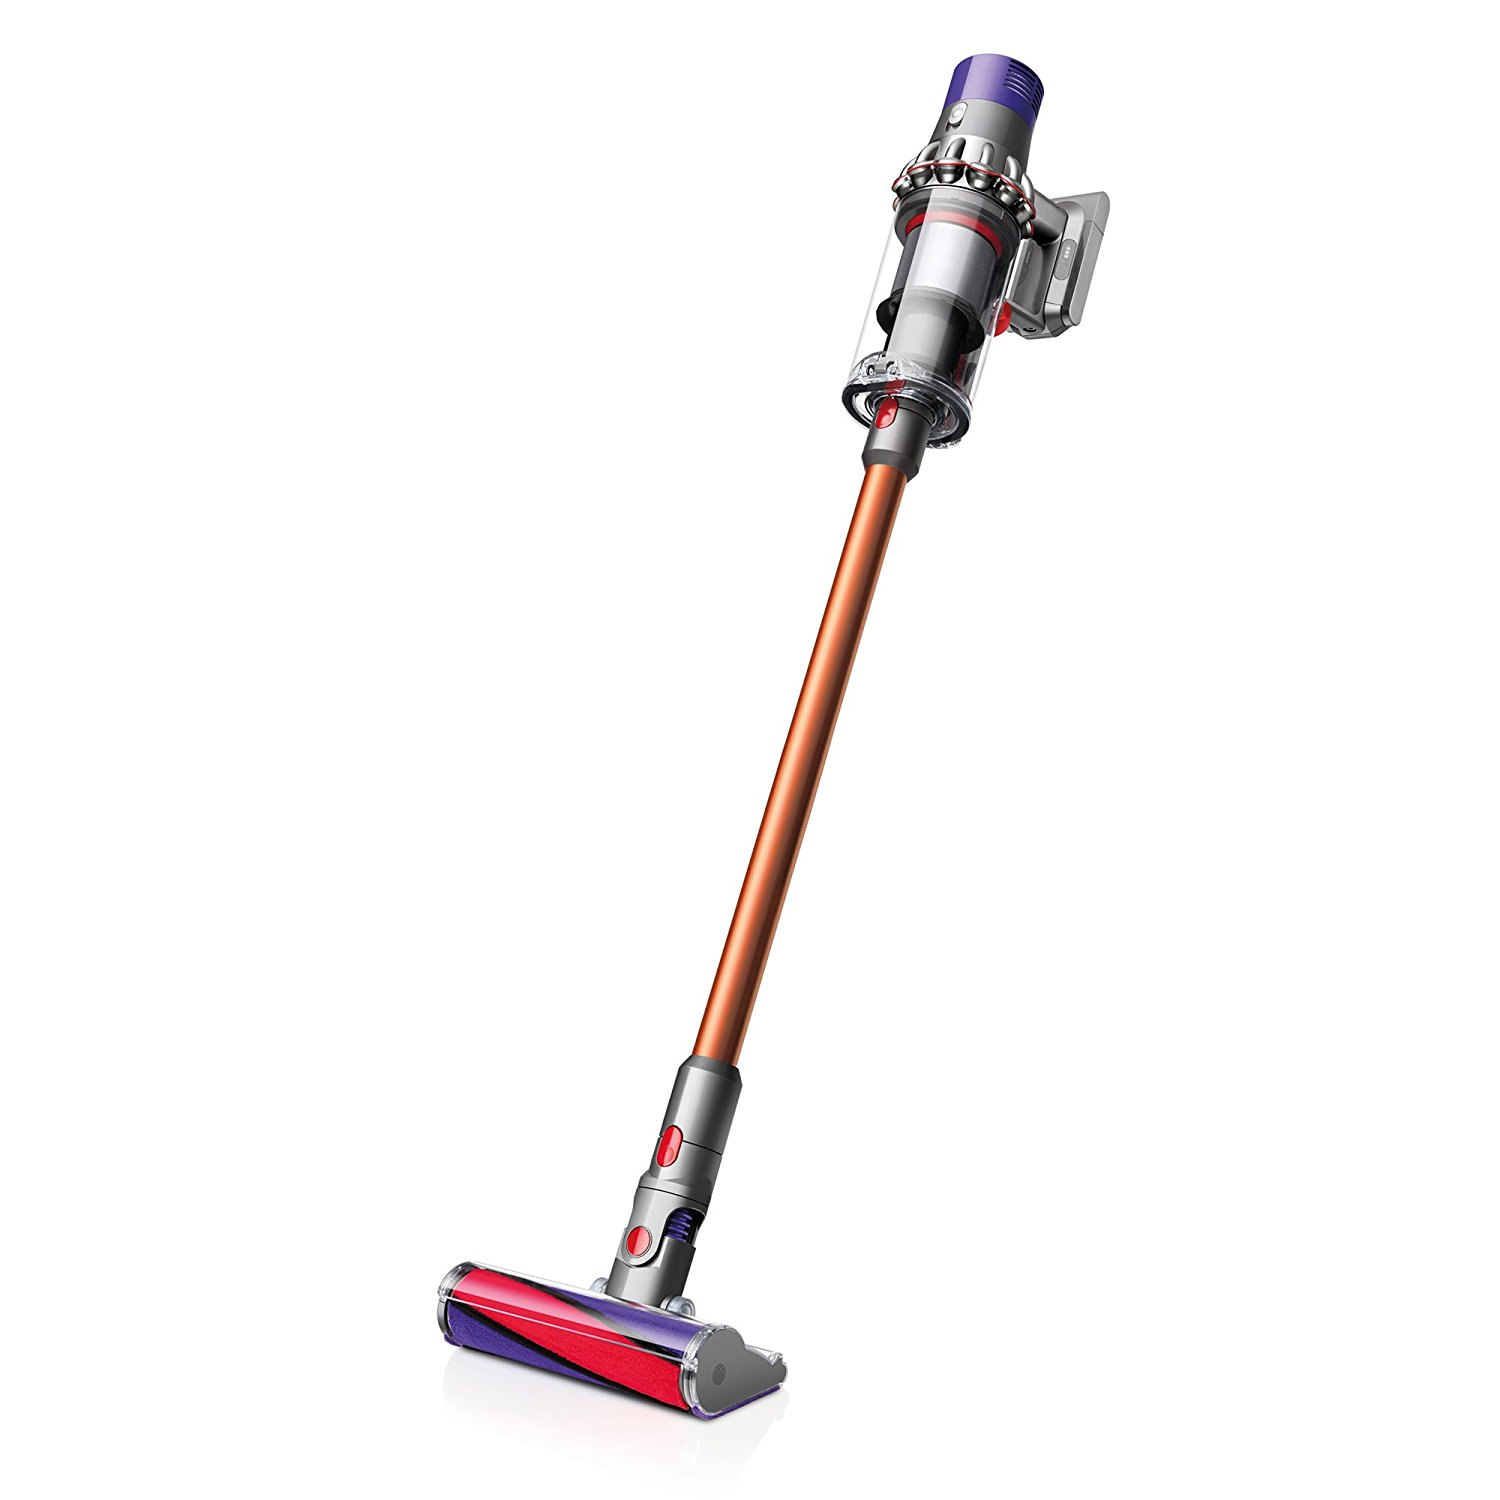 ea3f48ec7b4 Best Dyson vacuums to (hopefully) make your cleaning dreams come true